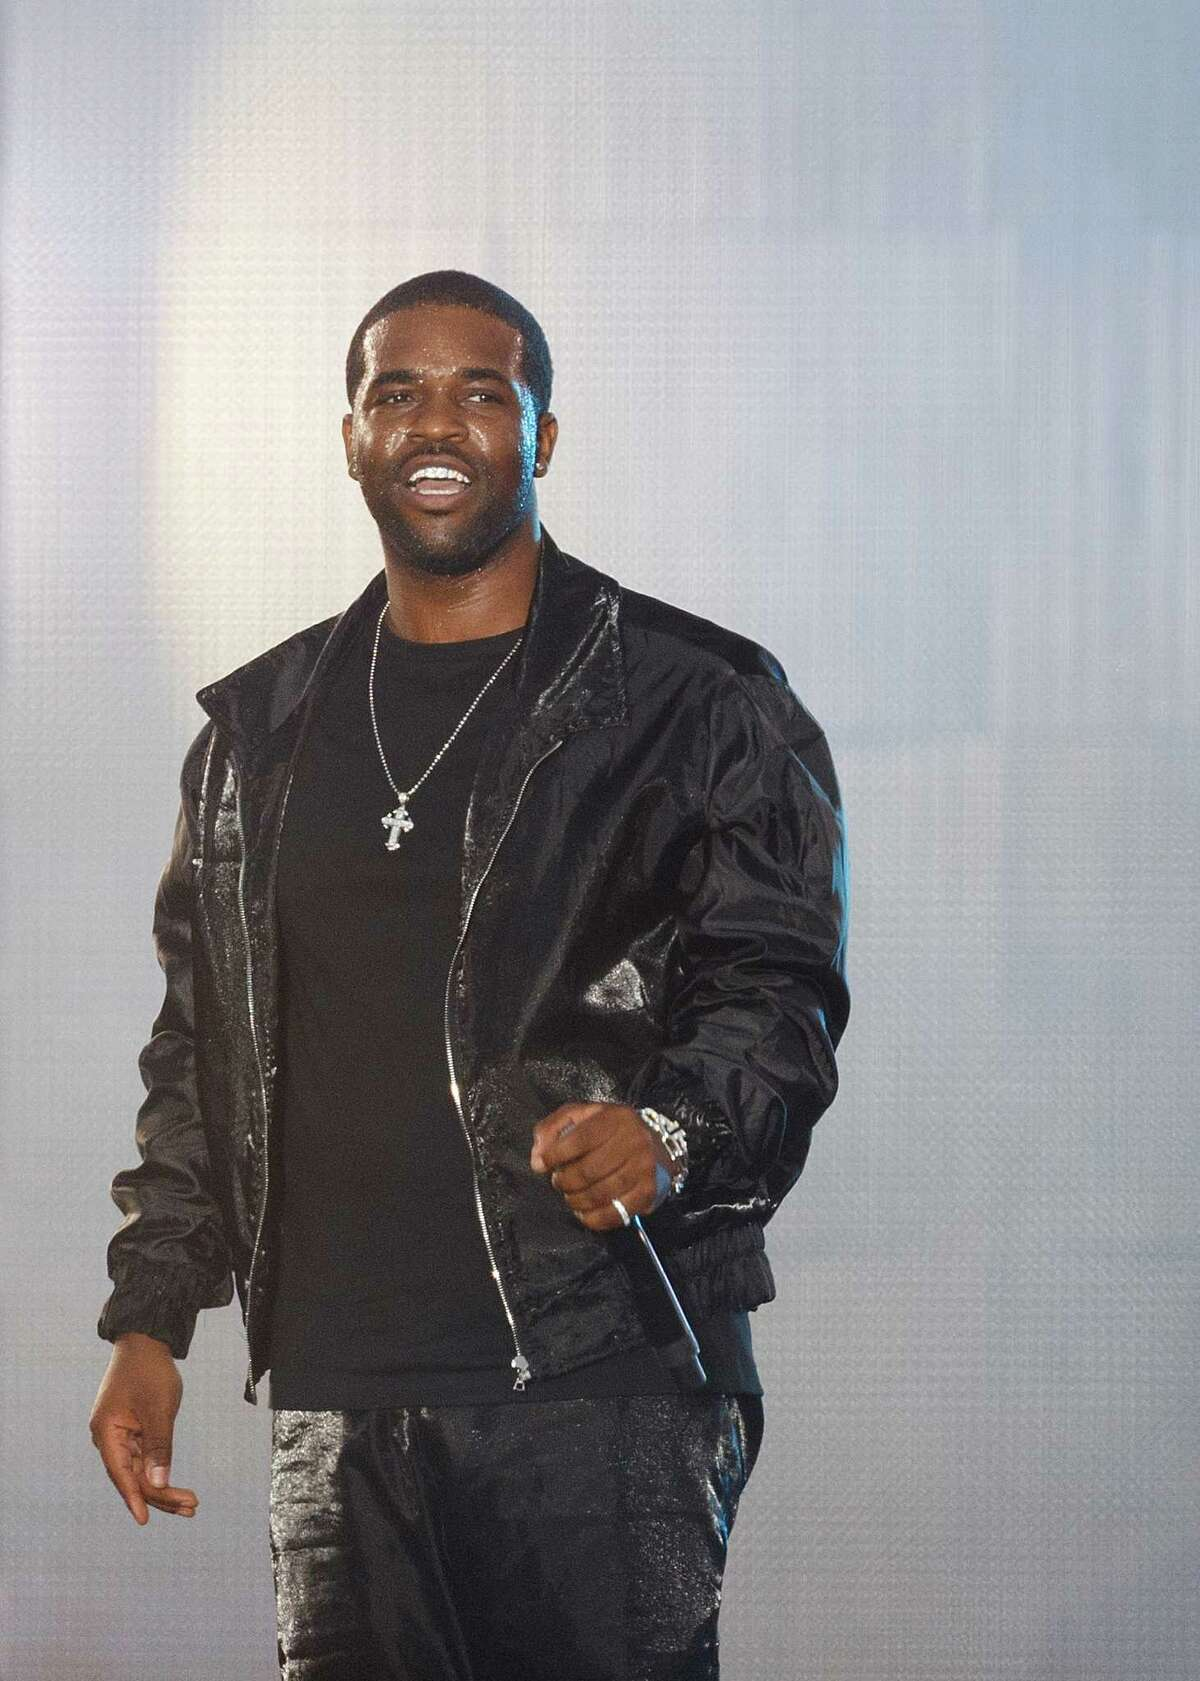 SURREY, BC - JULY 06: Rapper A$AP Ferg performs on stage during Day 1 of FVDED In The Park at Holland Park on July 6, 2018 in Surrey, Canada. (Photo by Andrew Chin/Getty Images)